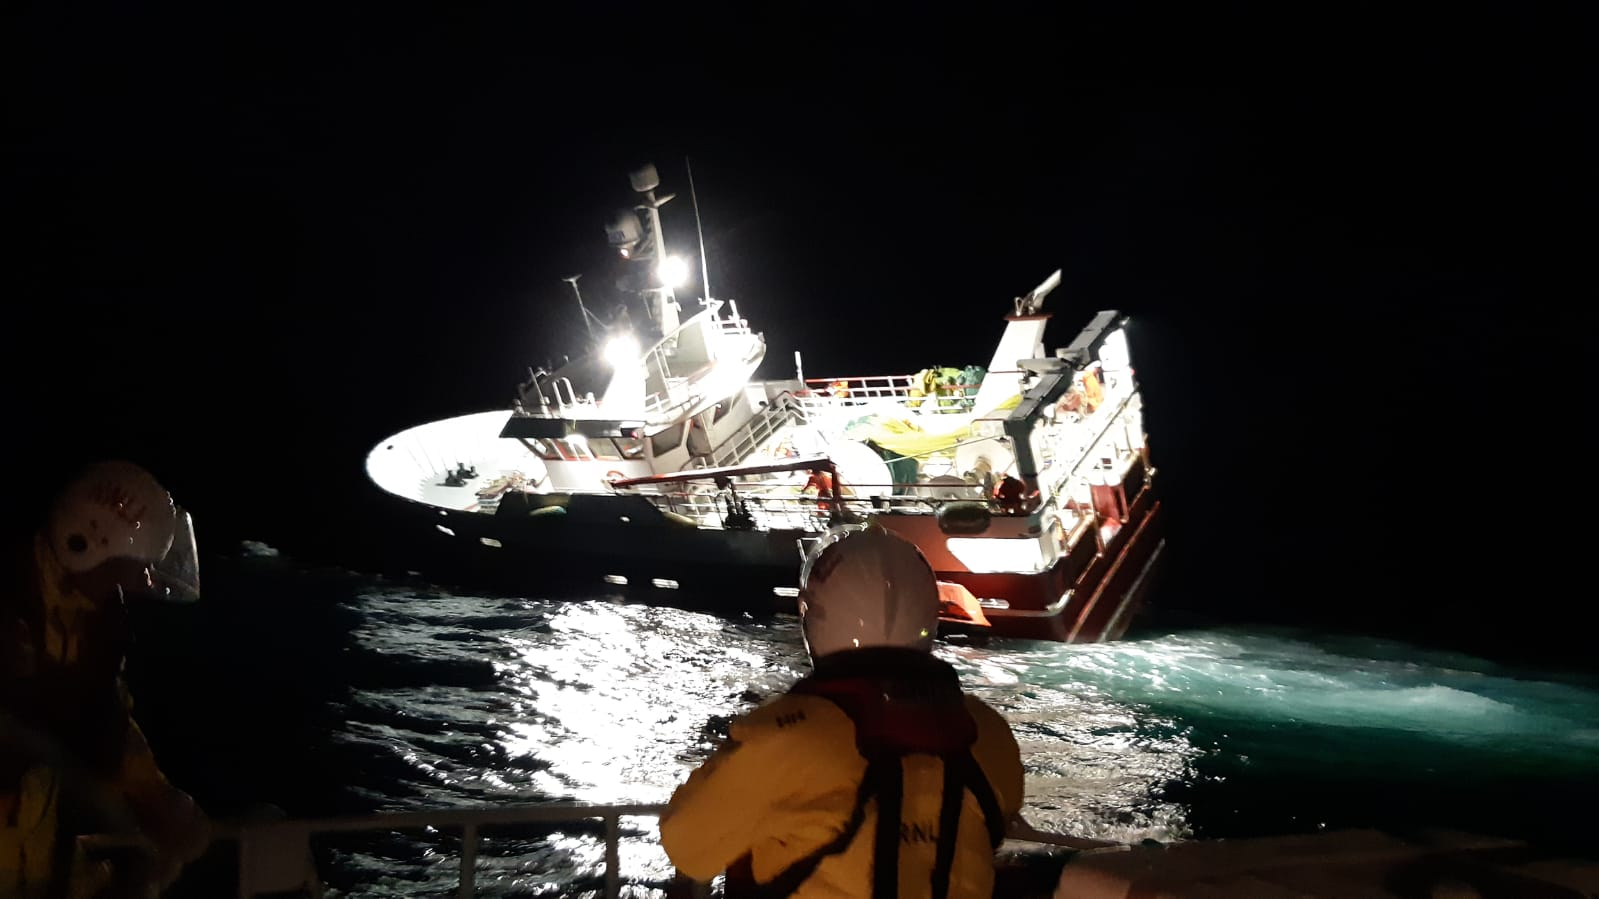 Lerwick lifeboat crew at the scene of the grounded vessel